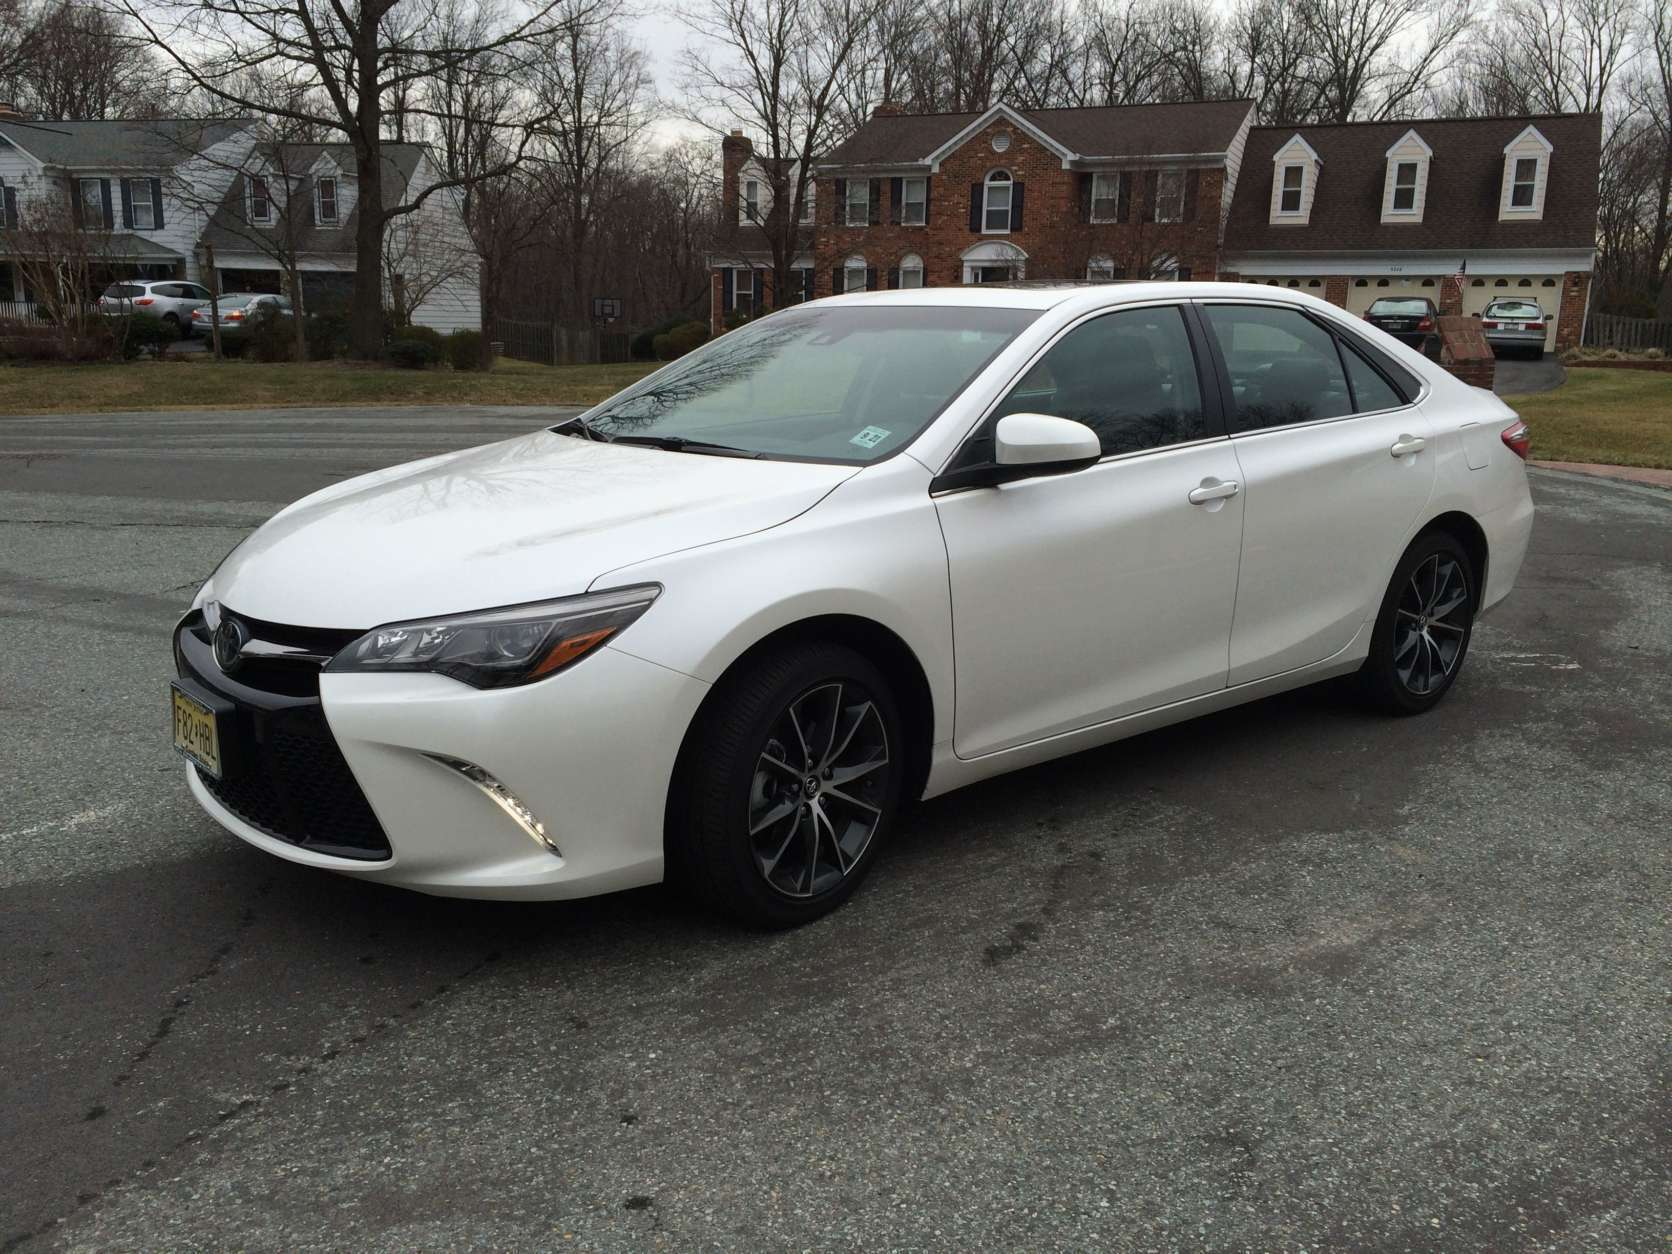 Toyota Camry Sport >> Car Review 2017 Toyota Camry Adds Some Sport To Midsize